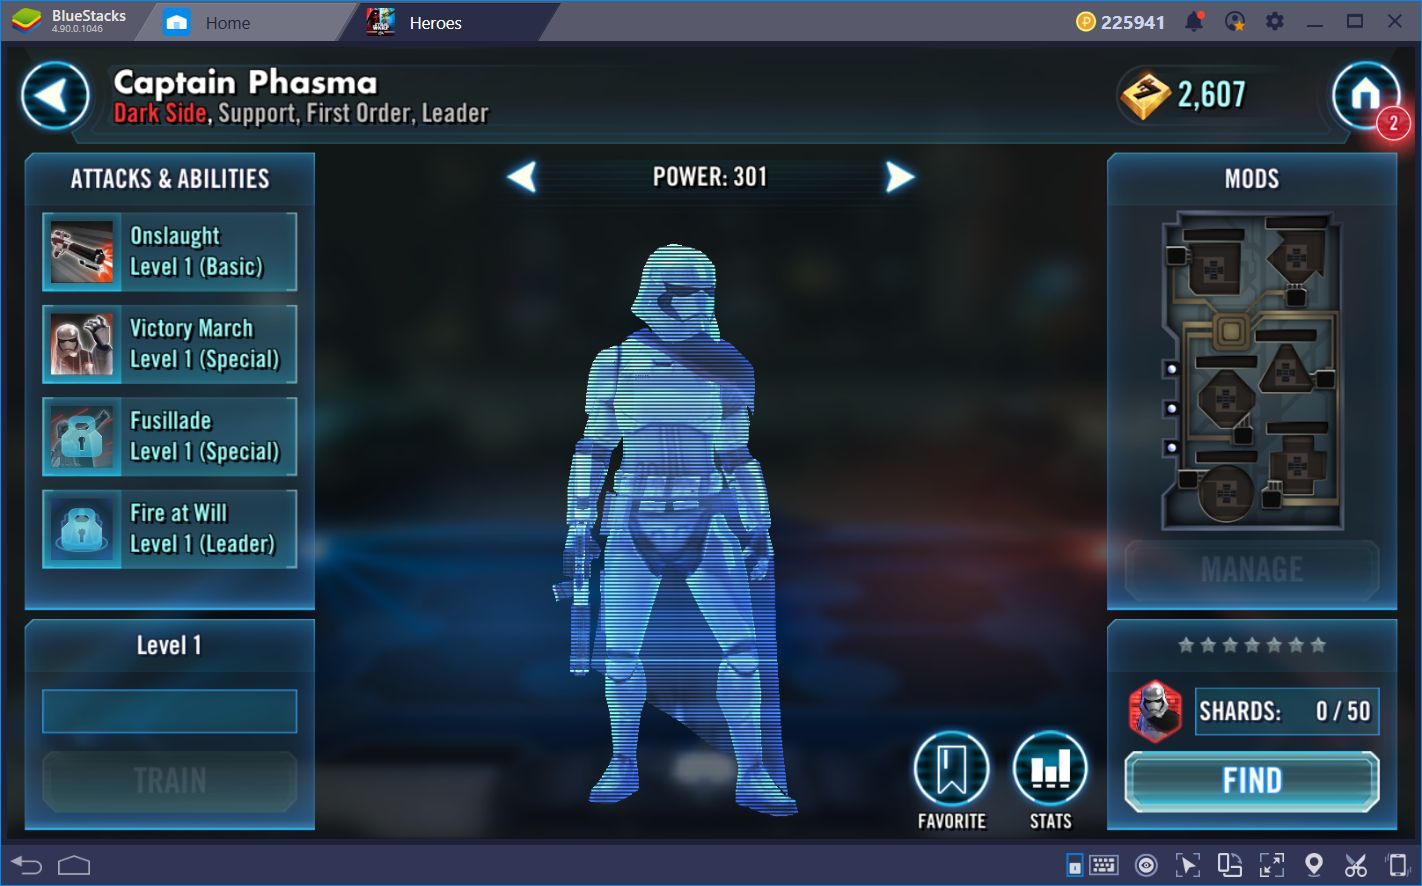 How to Unlock Awesome Characters in Star Wars: Galaxy of Heroes